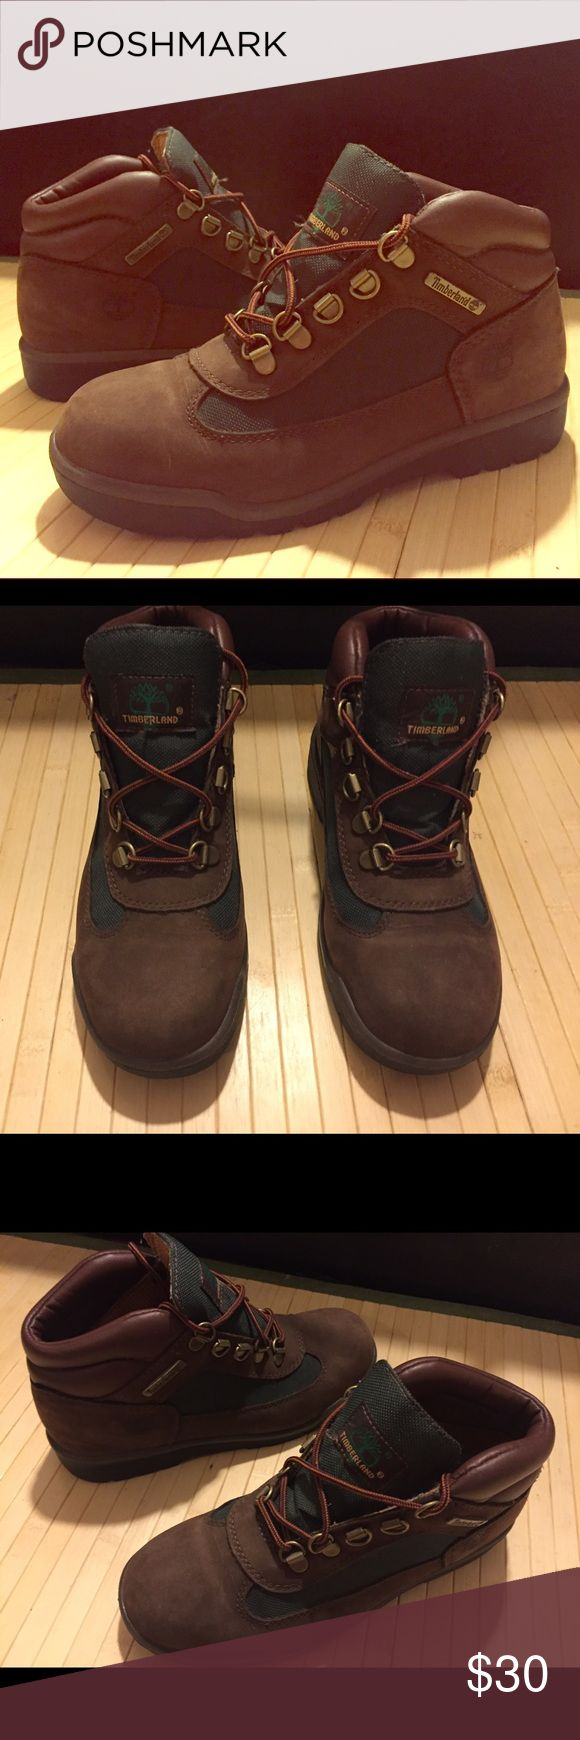 Size 4.5 - Brown/Olive Timberland Field Boots Size 4.5 - Brown/Olive Timberland Field Boots Timberland Shoes Boots